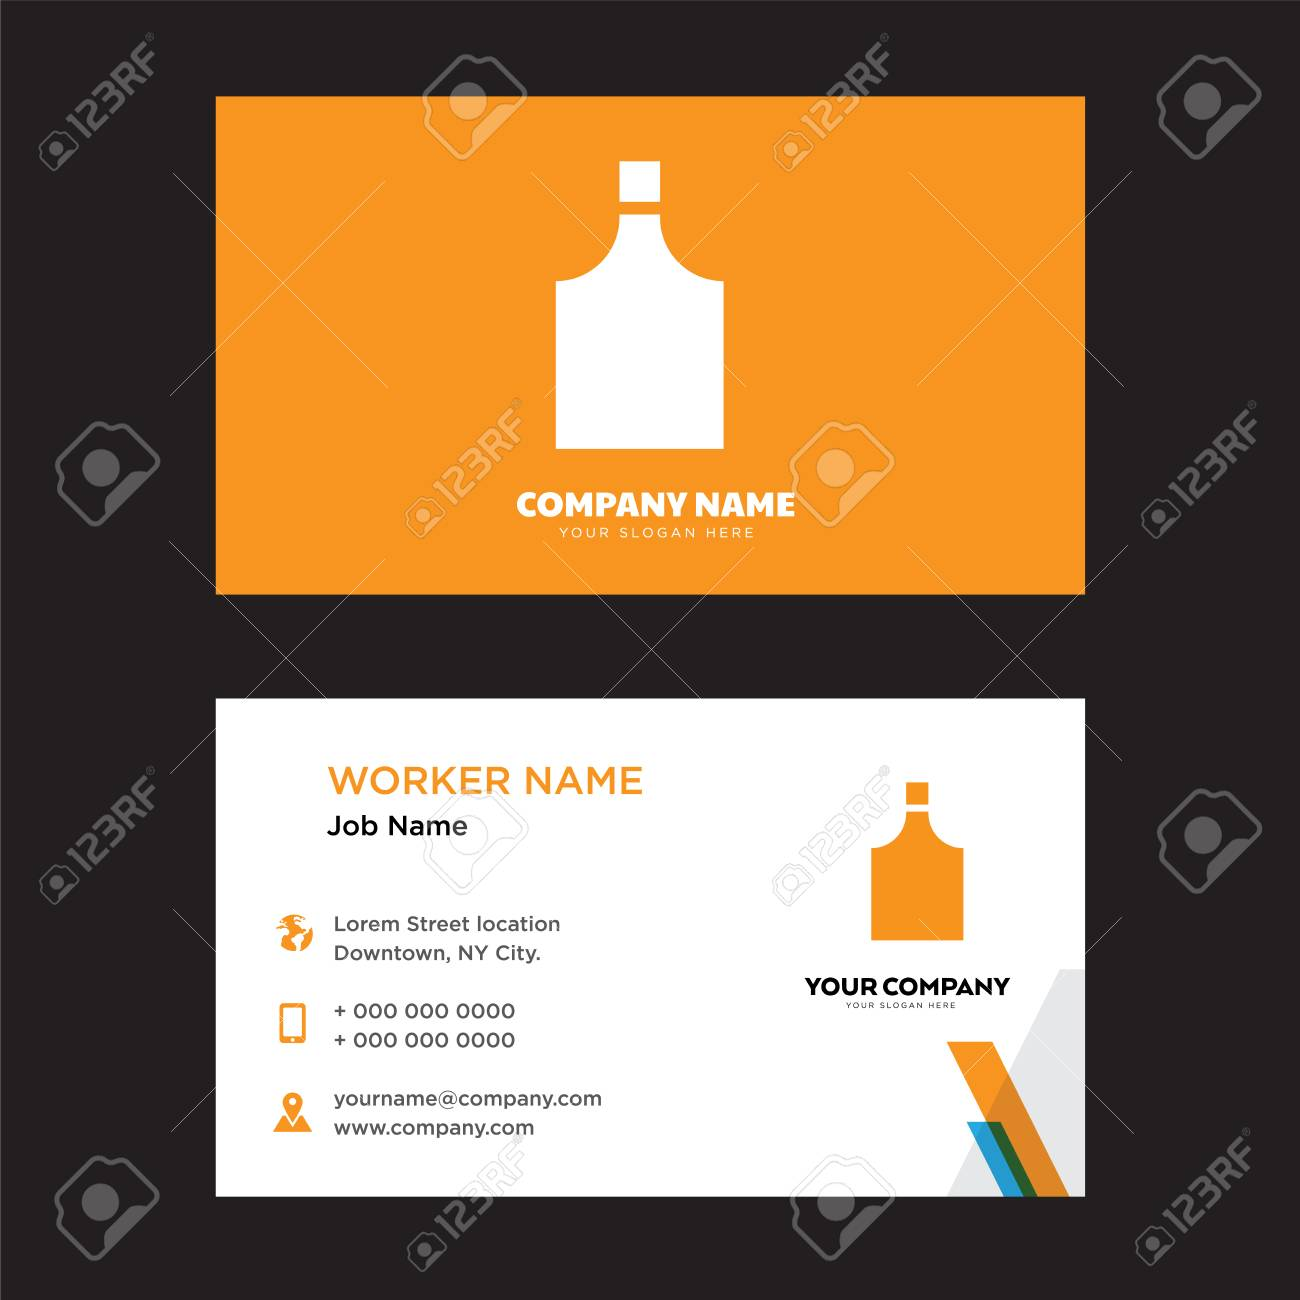 Perfume bottle business card design template, Visiting for your